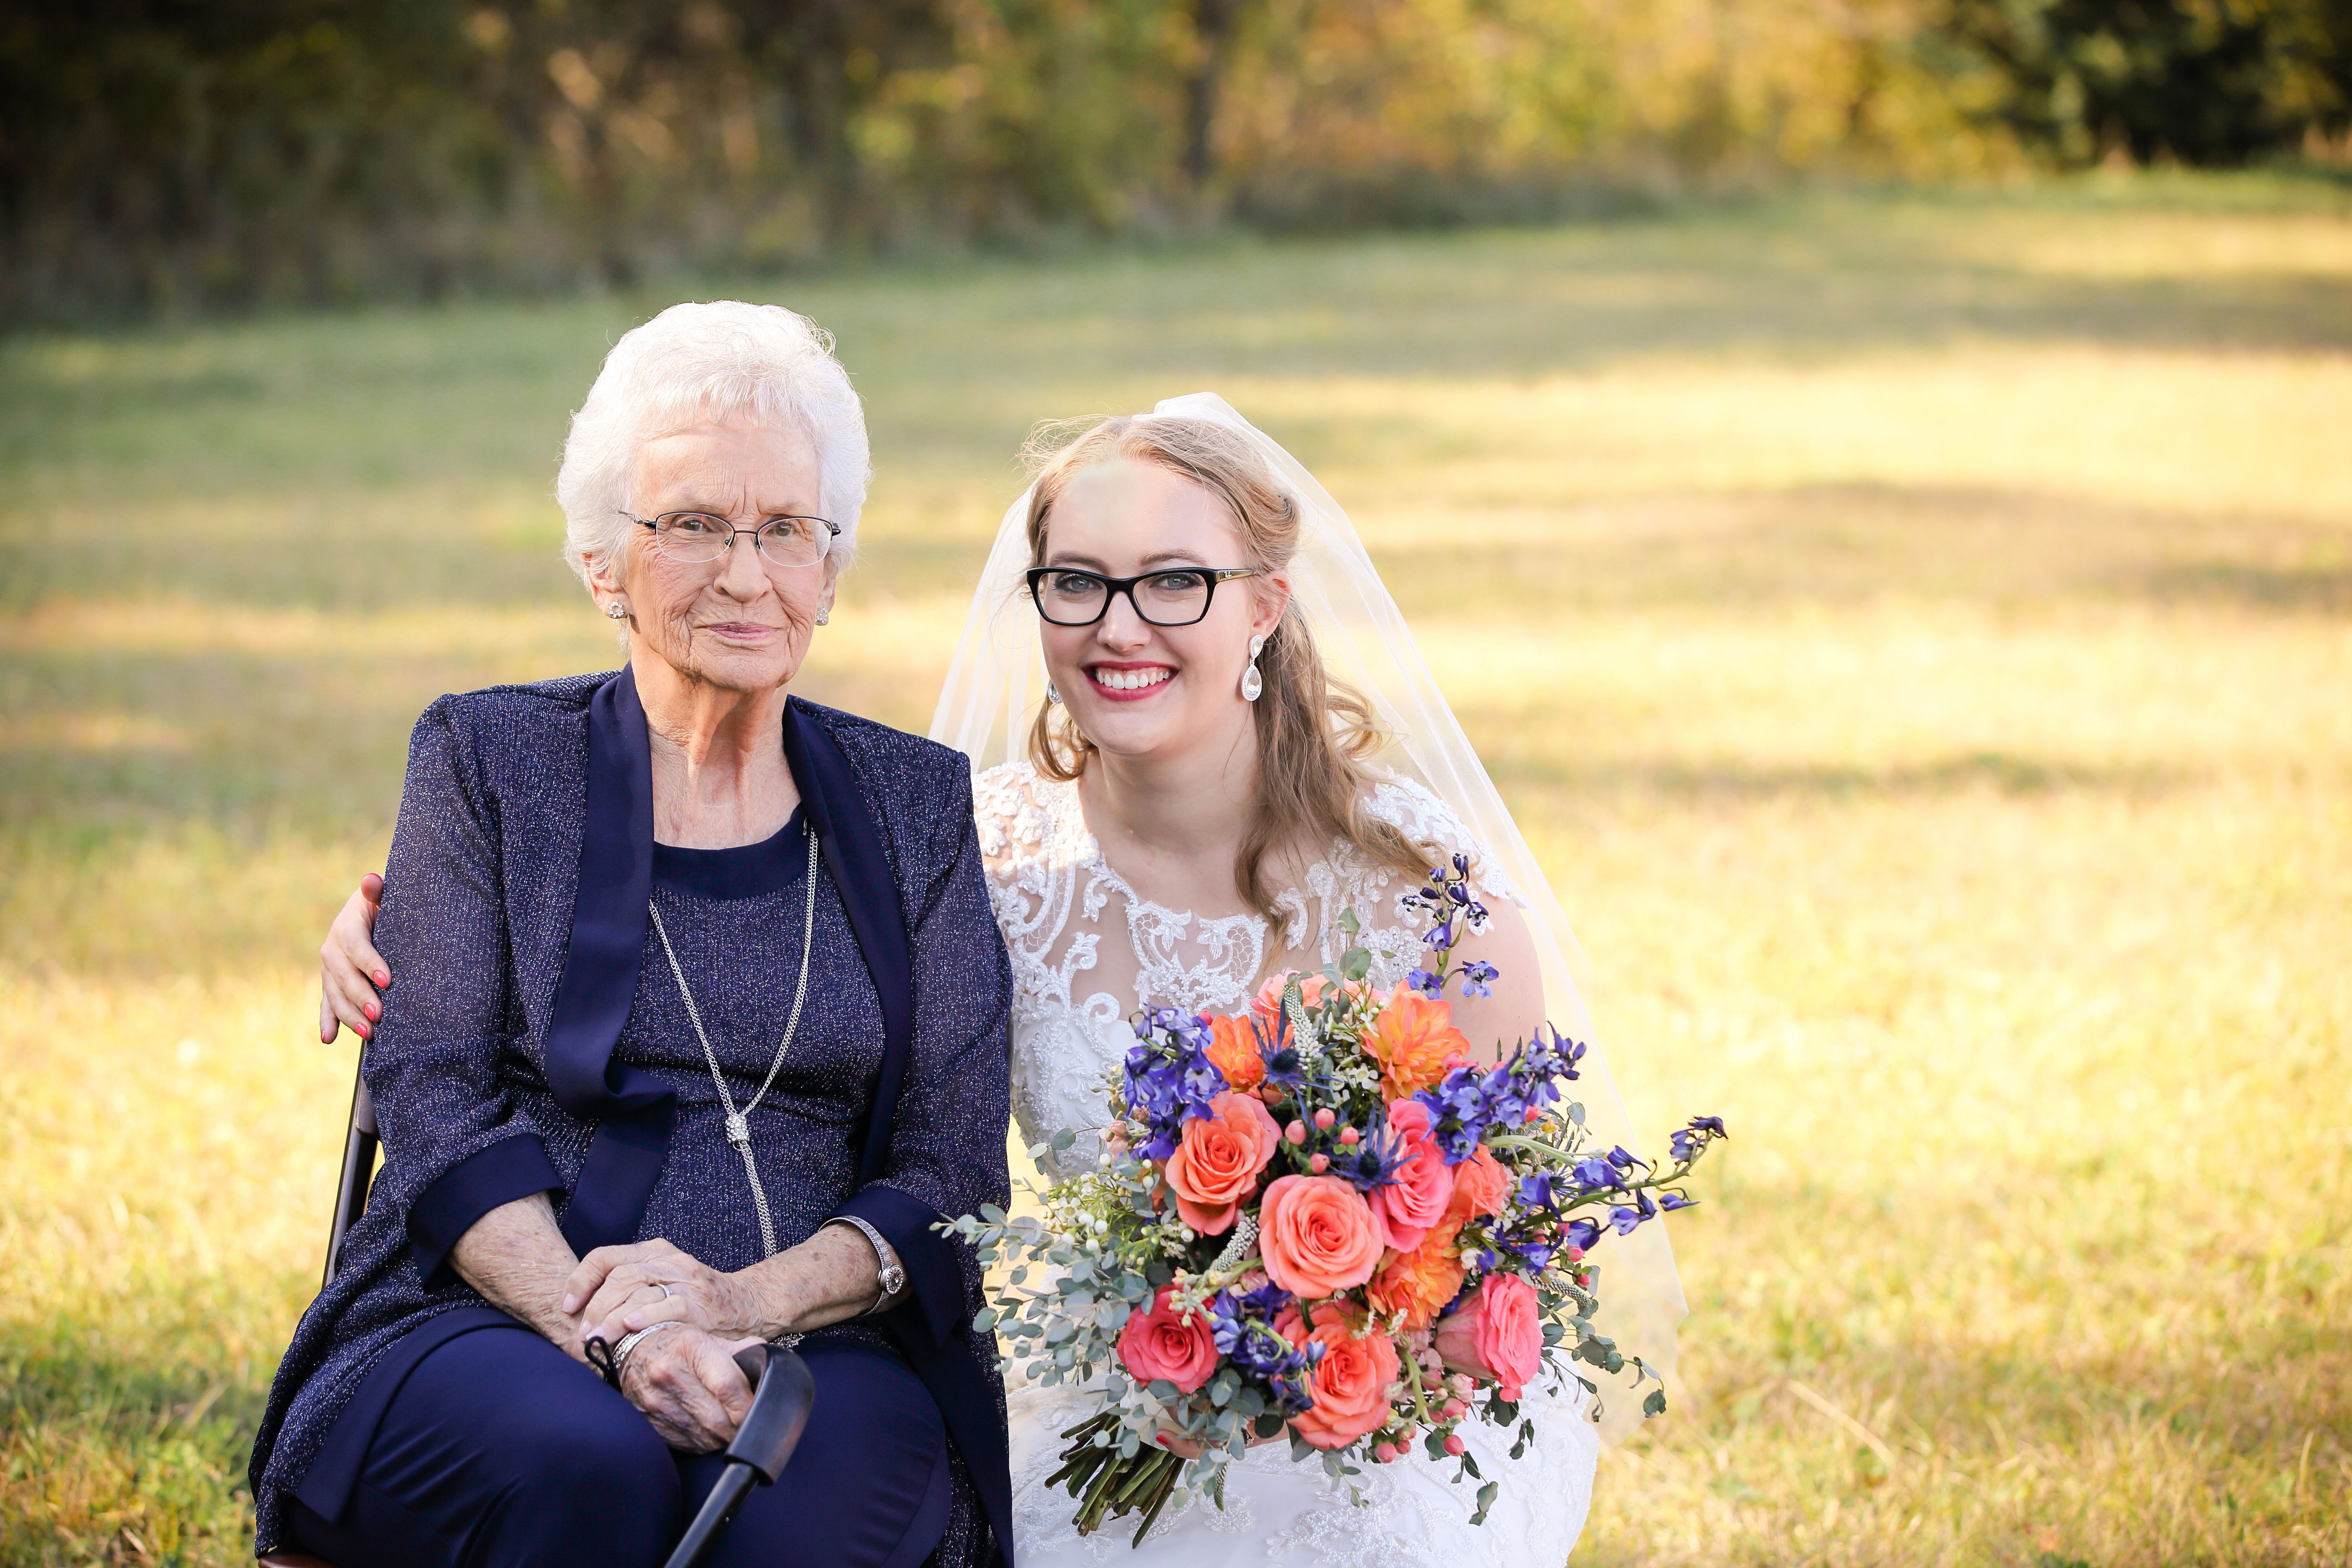 Cassey, in a wedding dress, embraces a well-dressed elderly woman